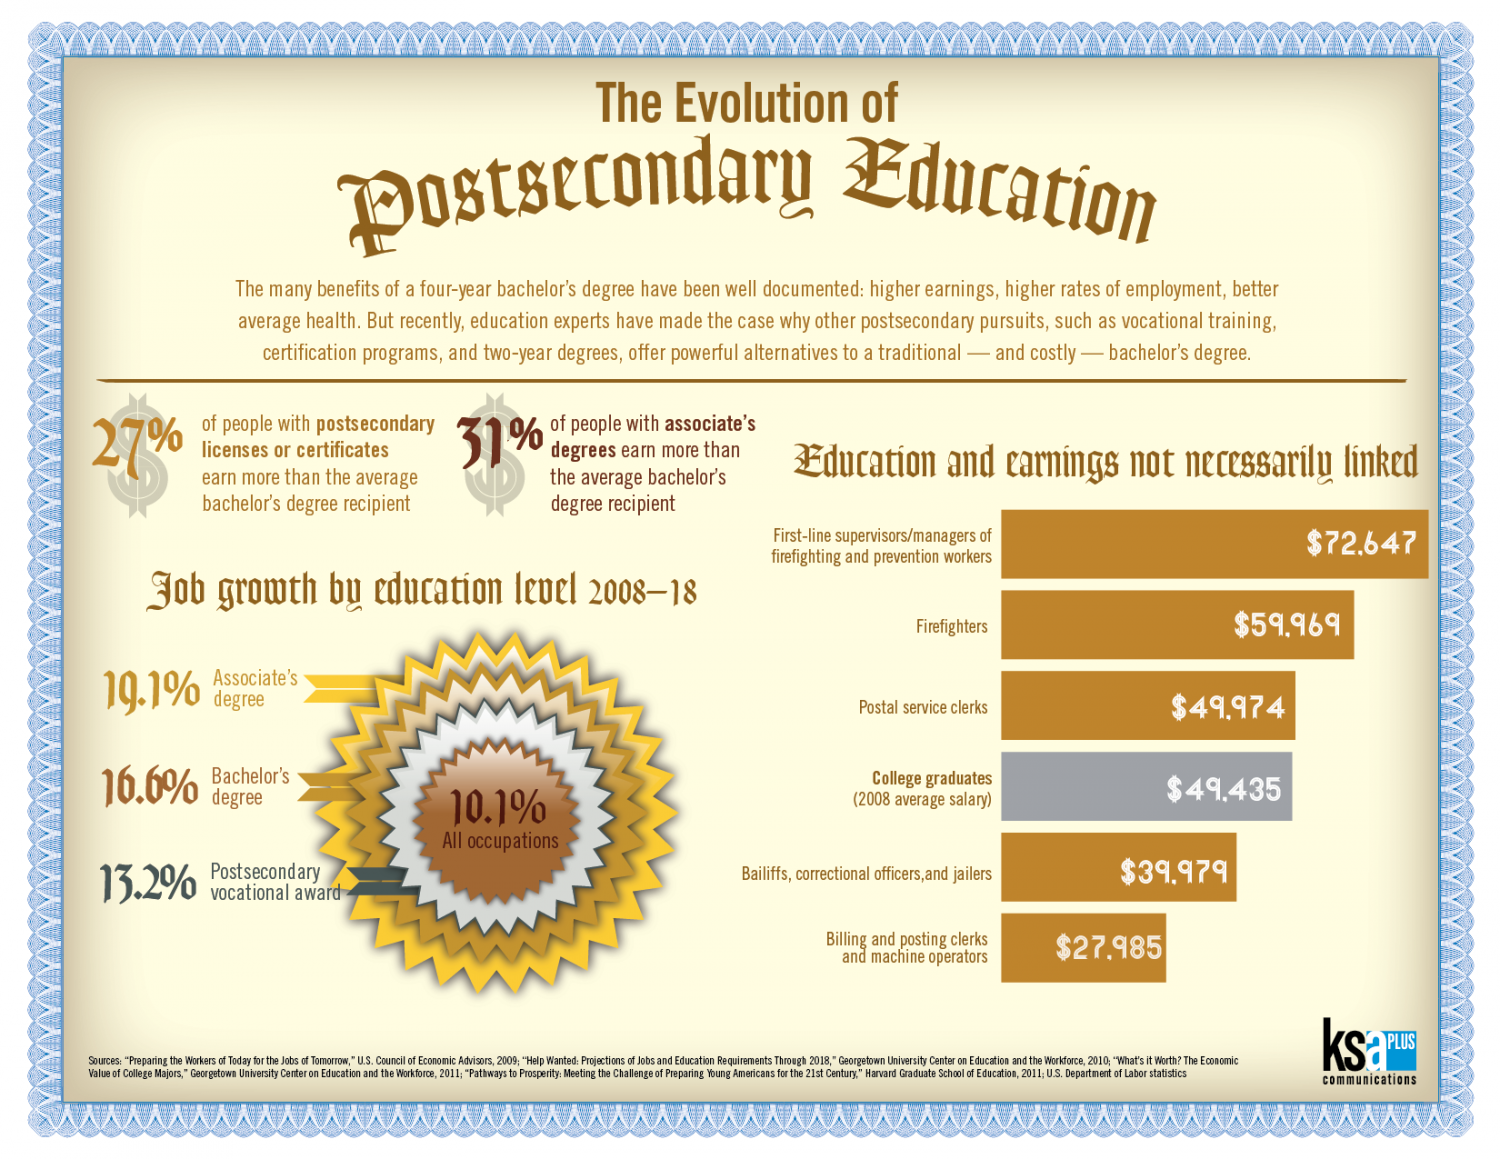 The Evolution of Postsecondary Education Infographic